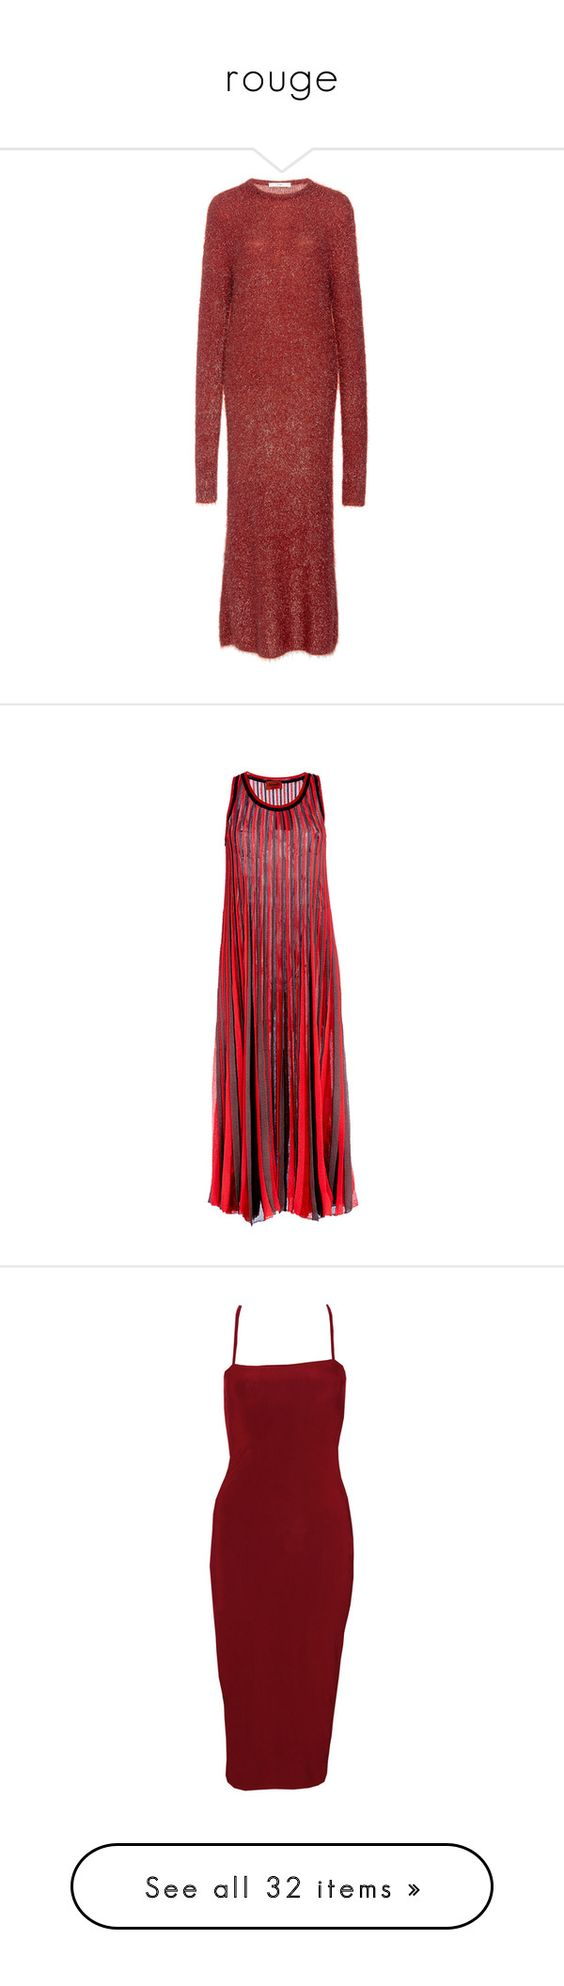 """""""rouge"""" by citizensofearth ❤ liked on Polyvore featuring dresses, long dresses, form fitting dresses, tibi, red form fitting dress, shift dress, red dress, missoni dress, red sheath dress and red stripe dress"""